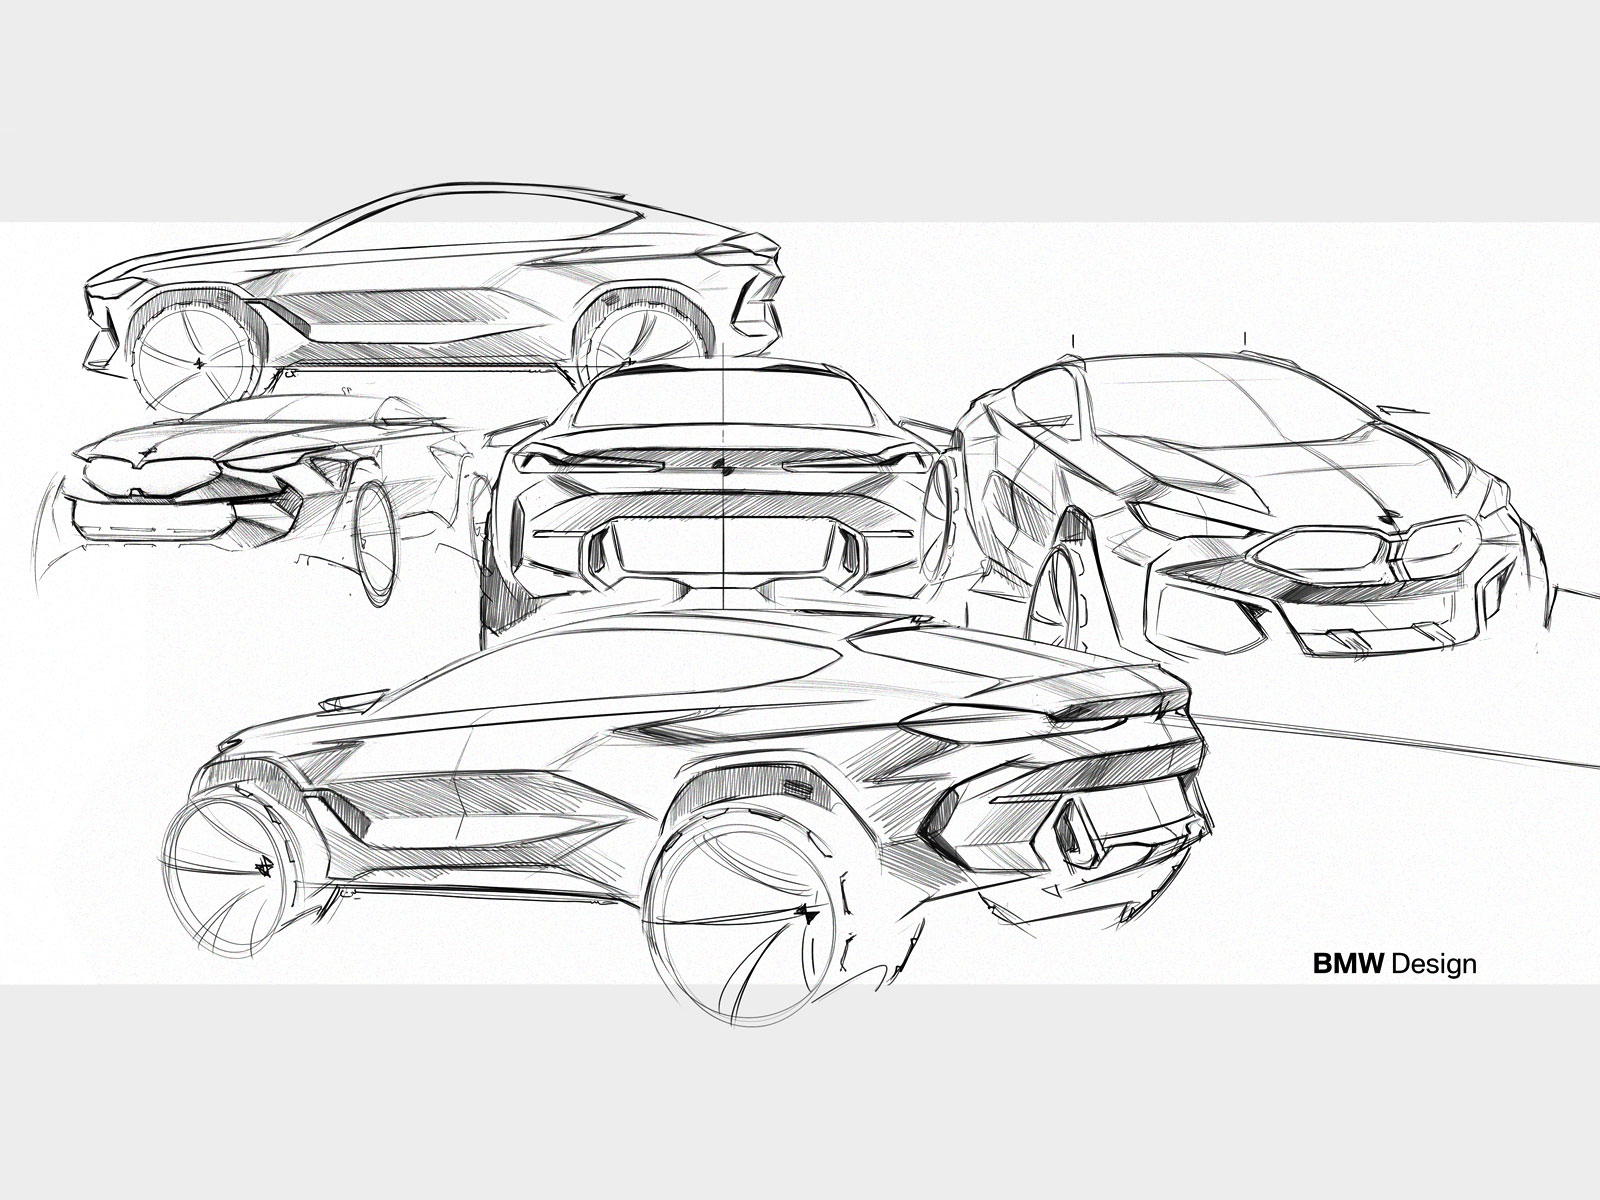 New BMW X6 Design Sketches